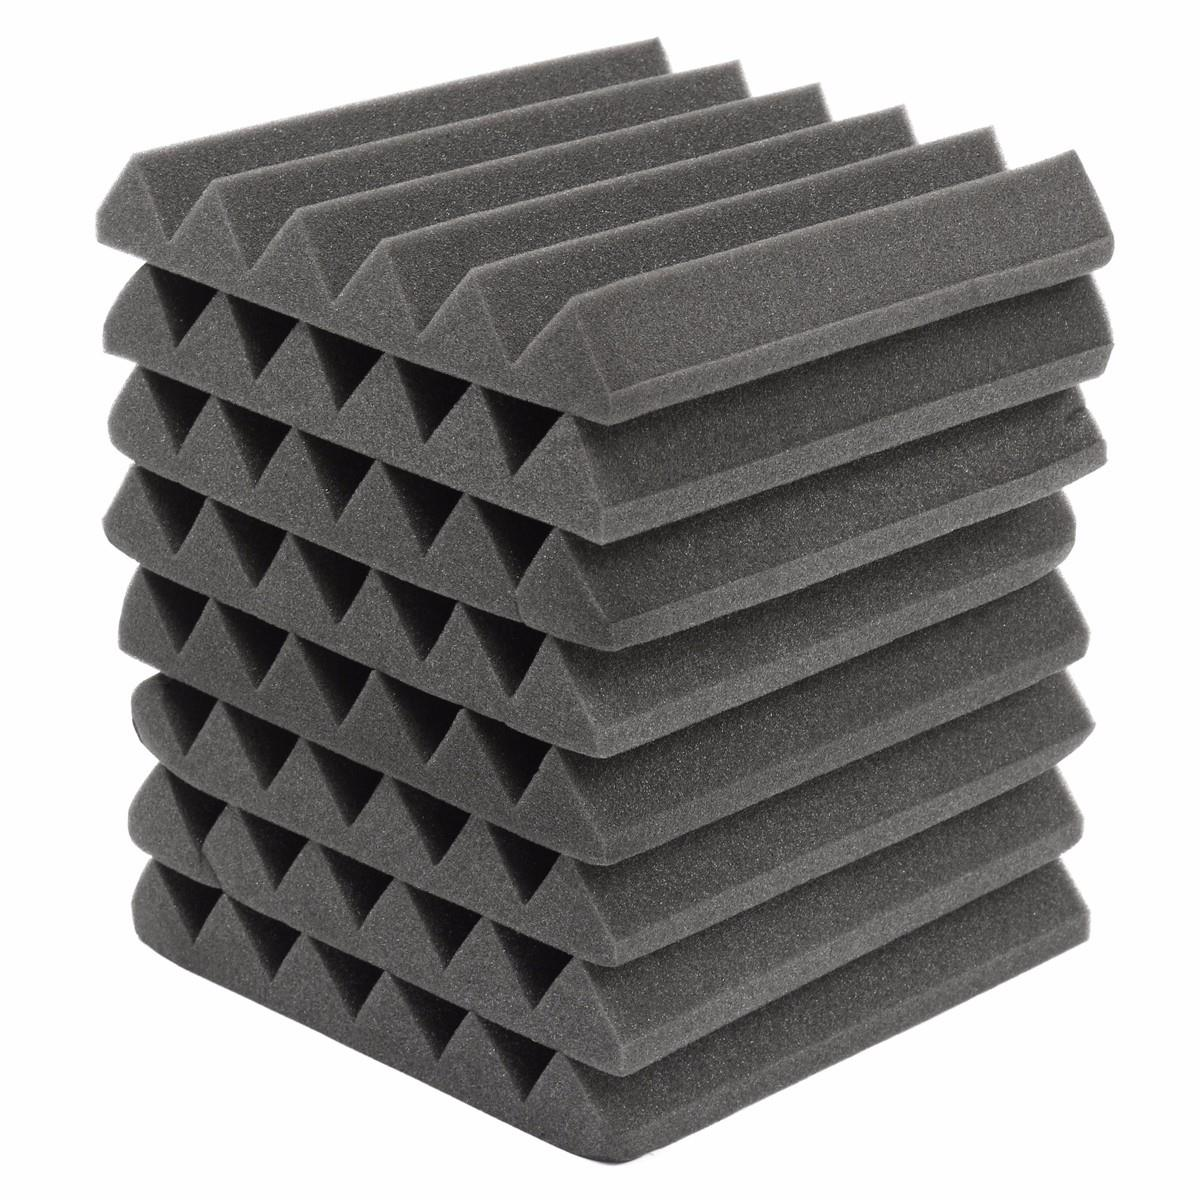 8Pcs 305 x 305 x 45mm Soundproofing Foam Acoustic Foam Sound Treatment Studio Room Absorption Wedge Tiles Polyurethane foam sound absorption coefficient analysis